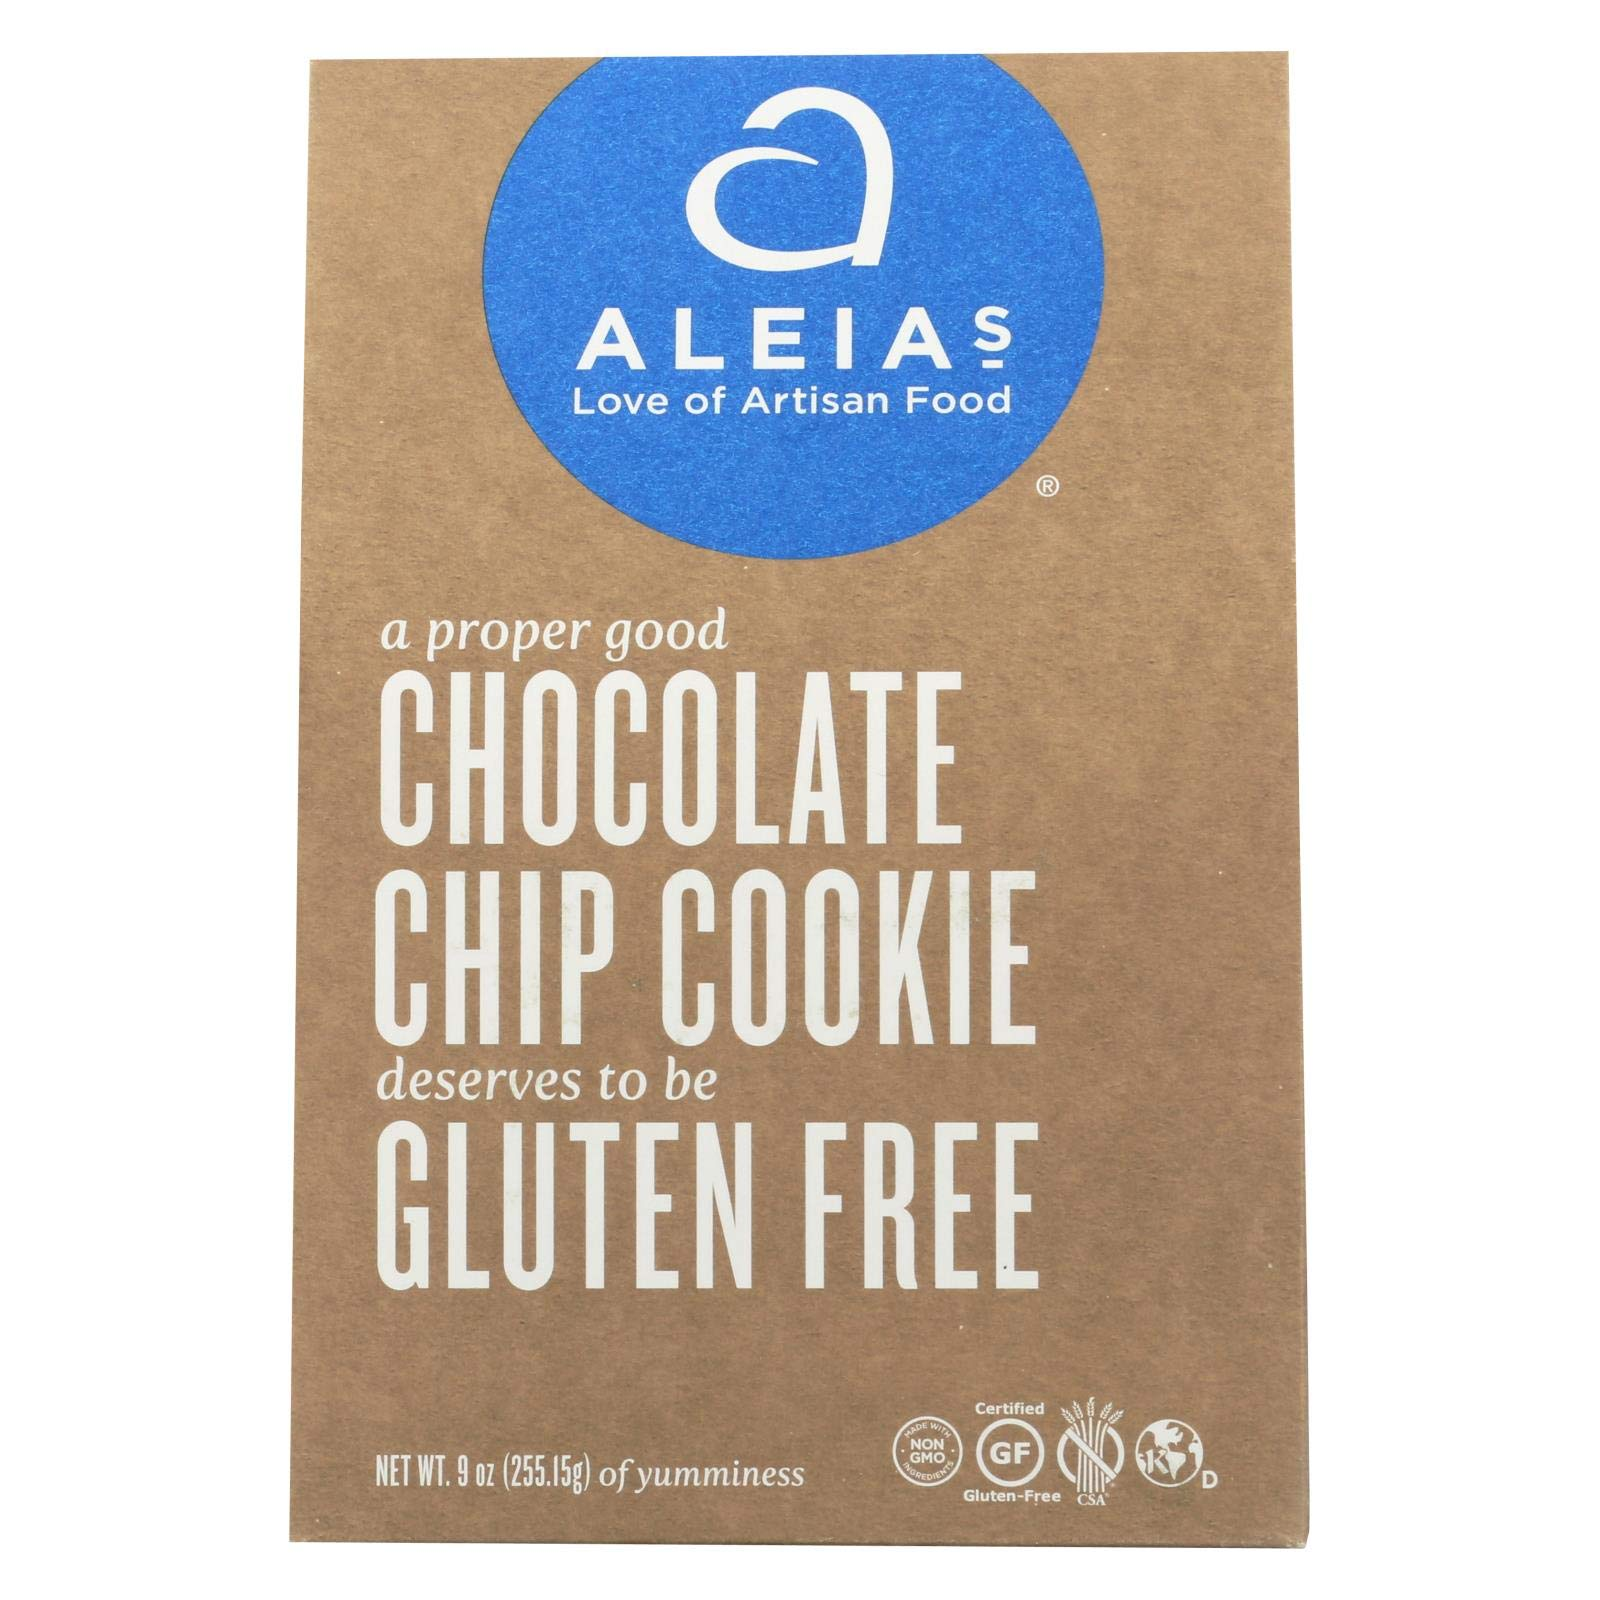 Aleias Gluten Free Chocolate Chip Cookies, 9 Ounce - 6 per case. by Aleias